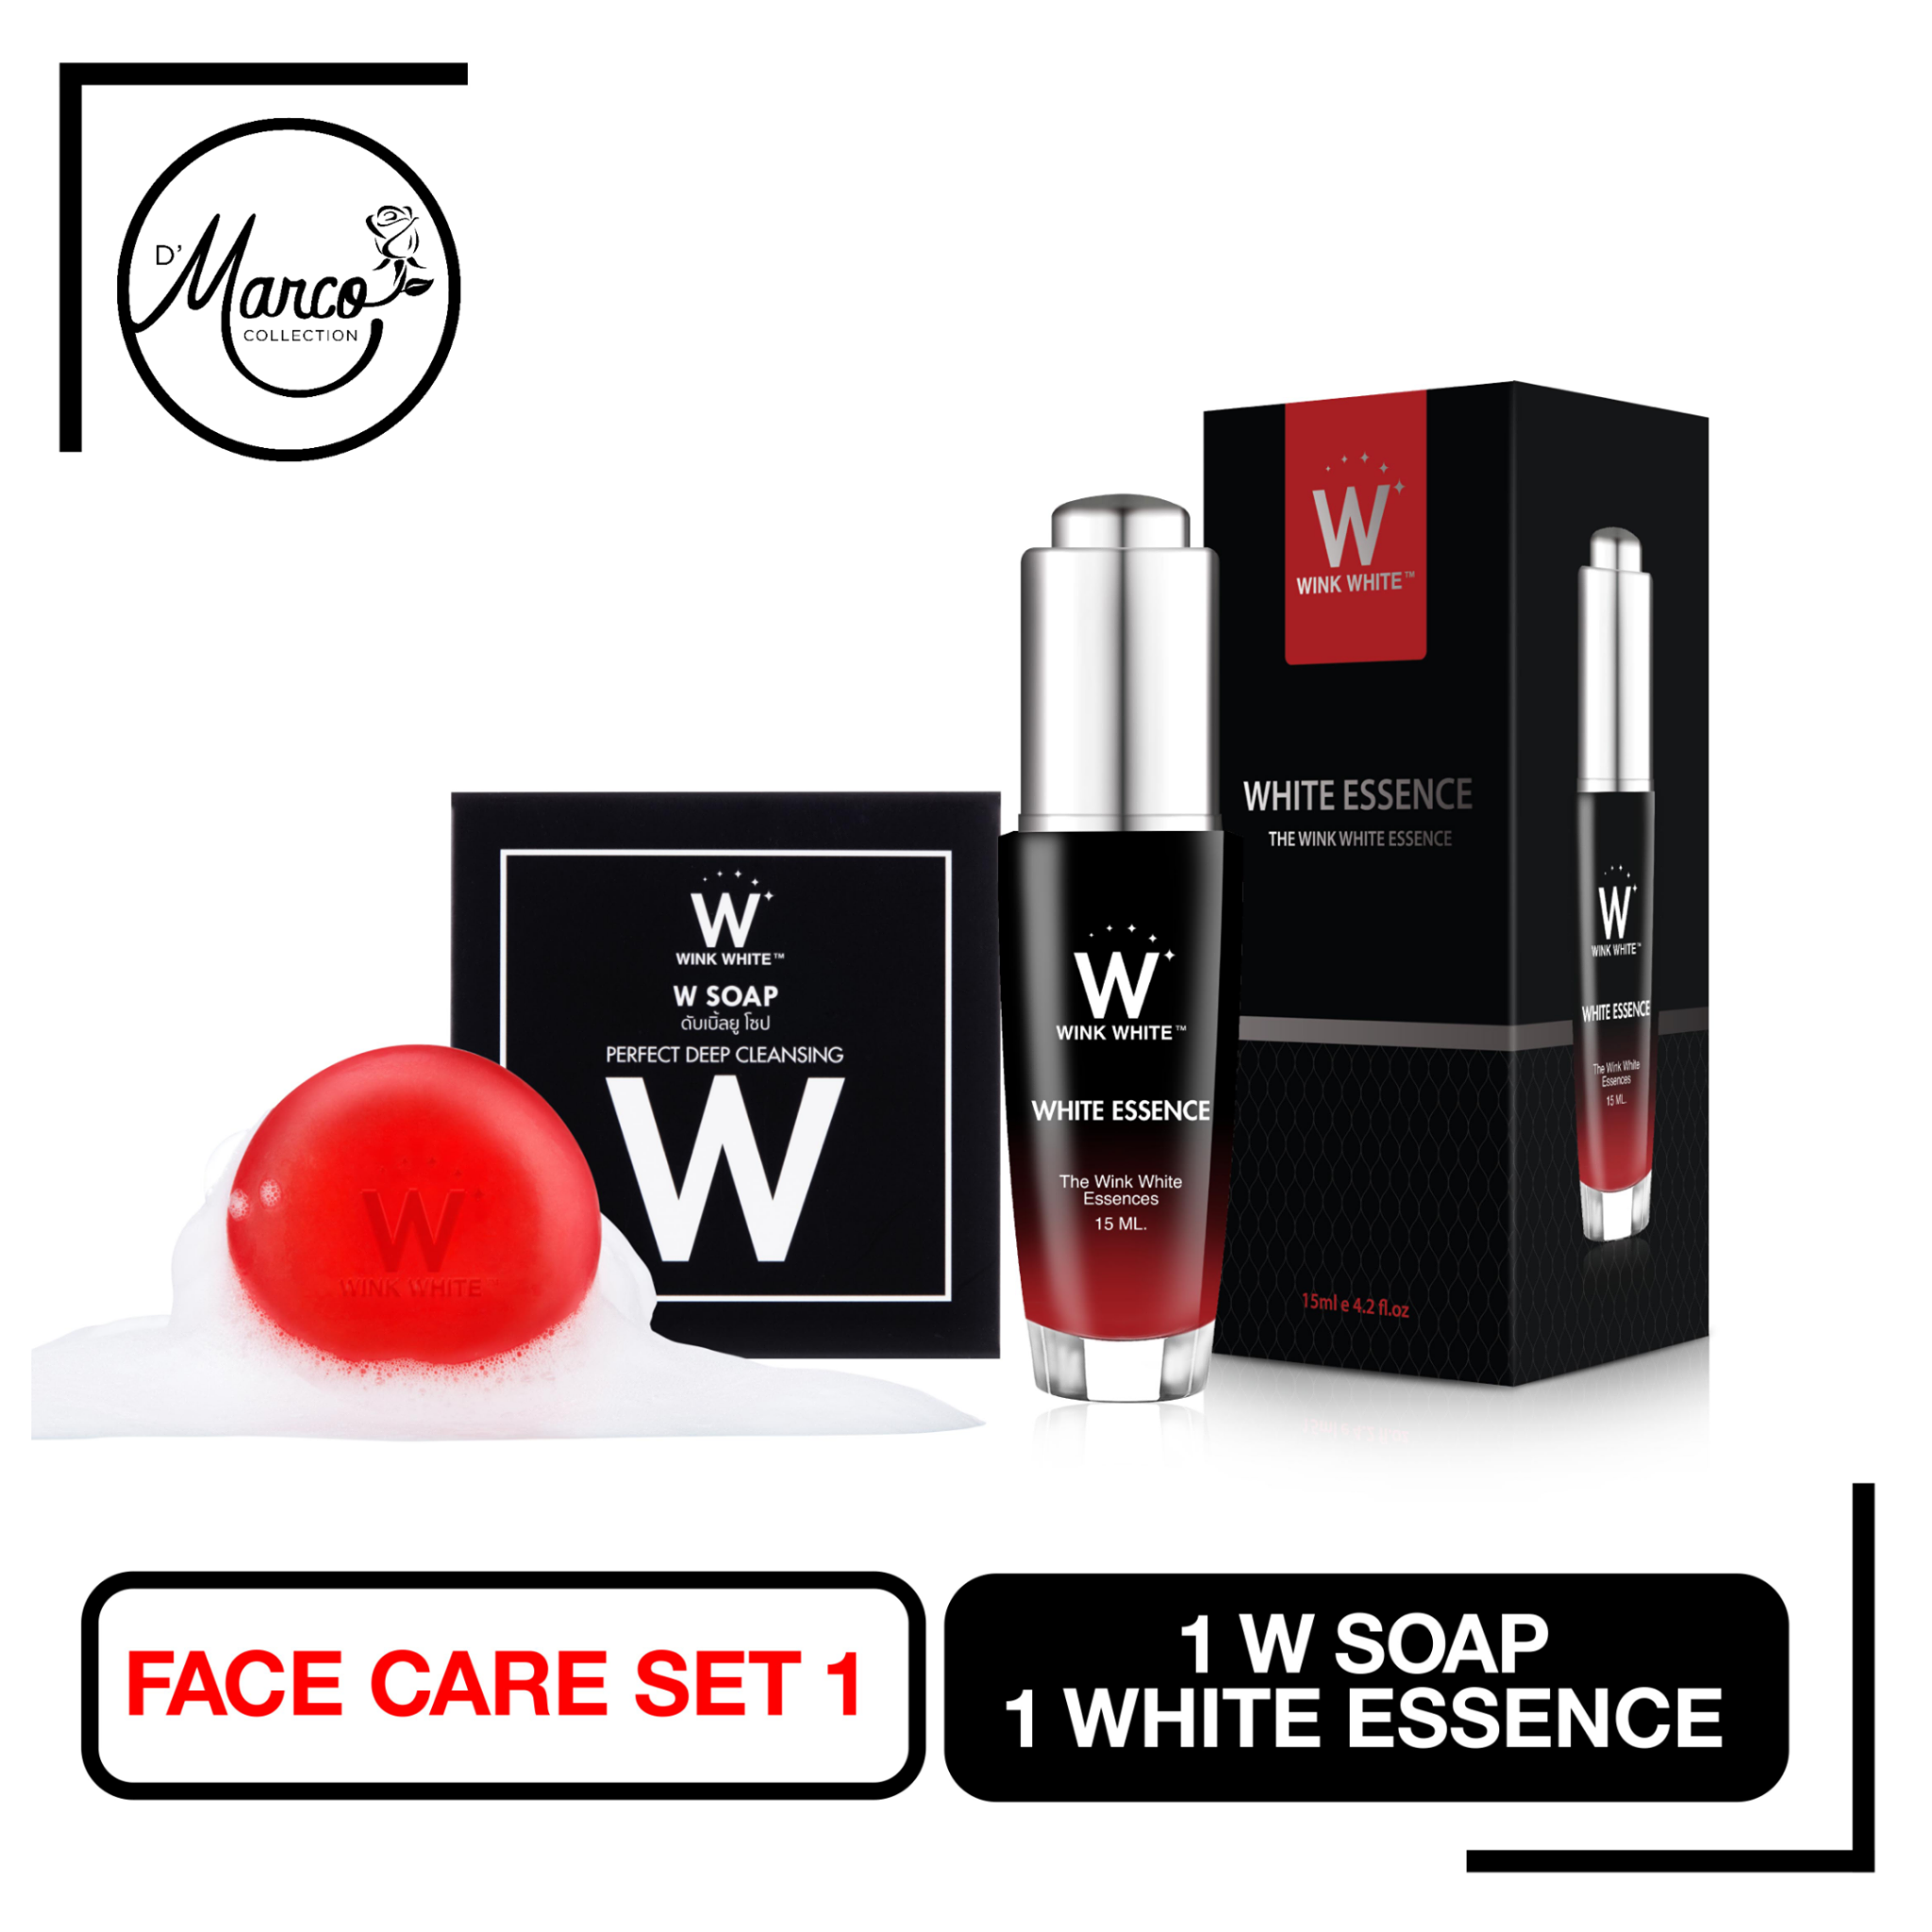 Facial Set 1, 1 W Soap, 1 White Essence